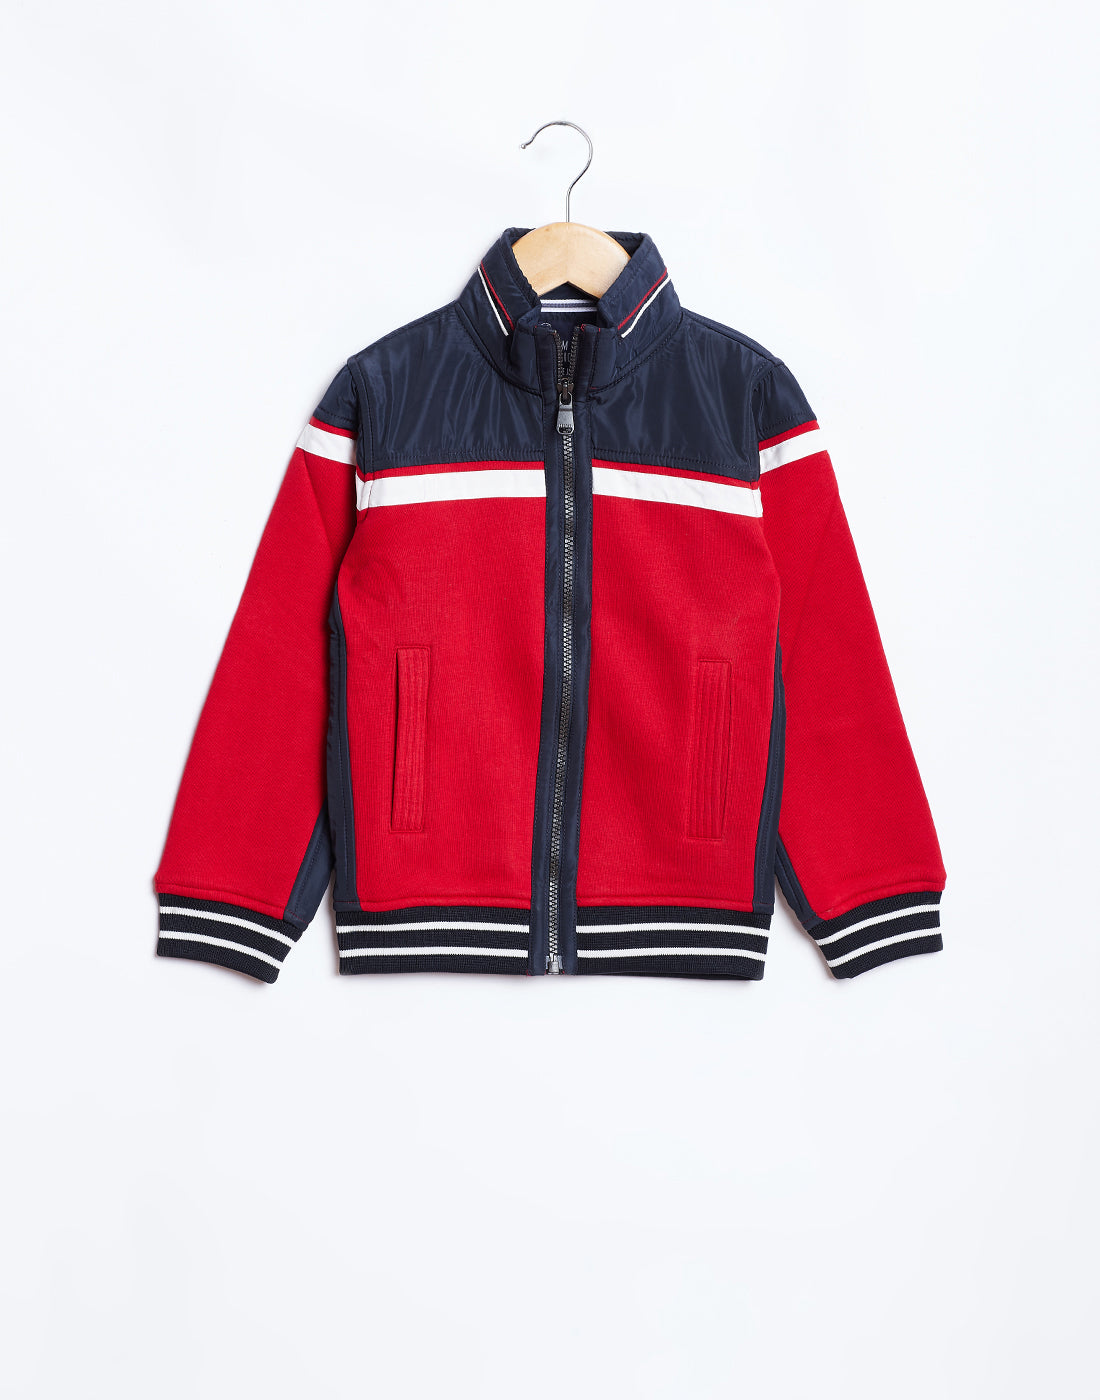 Octave Boys Brick Red & Navy Jacket